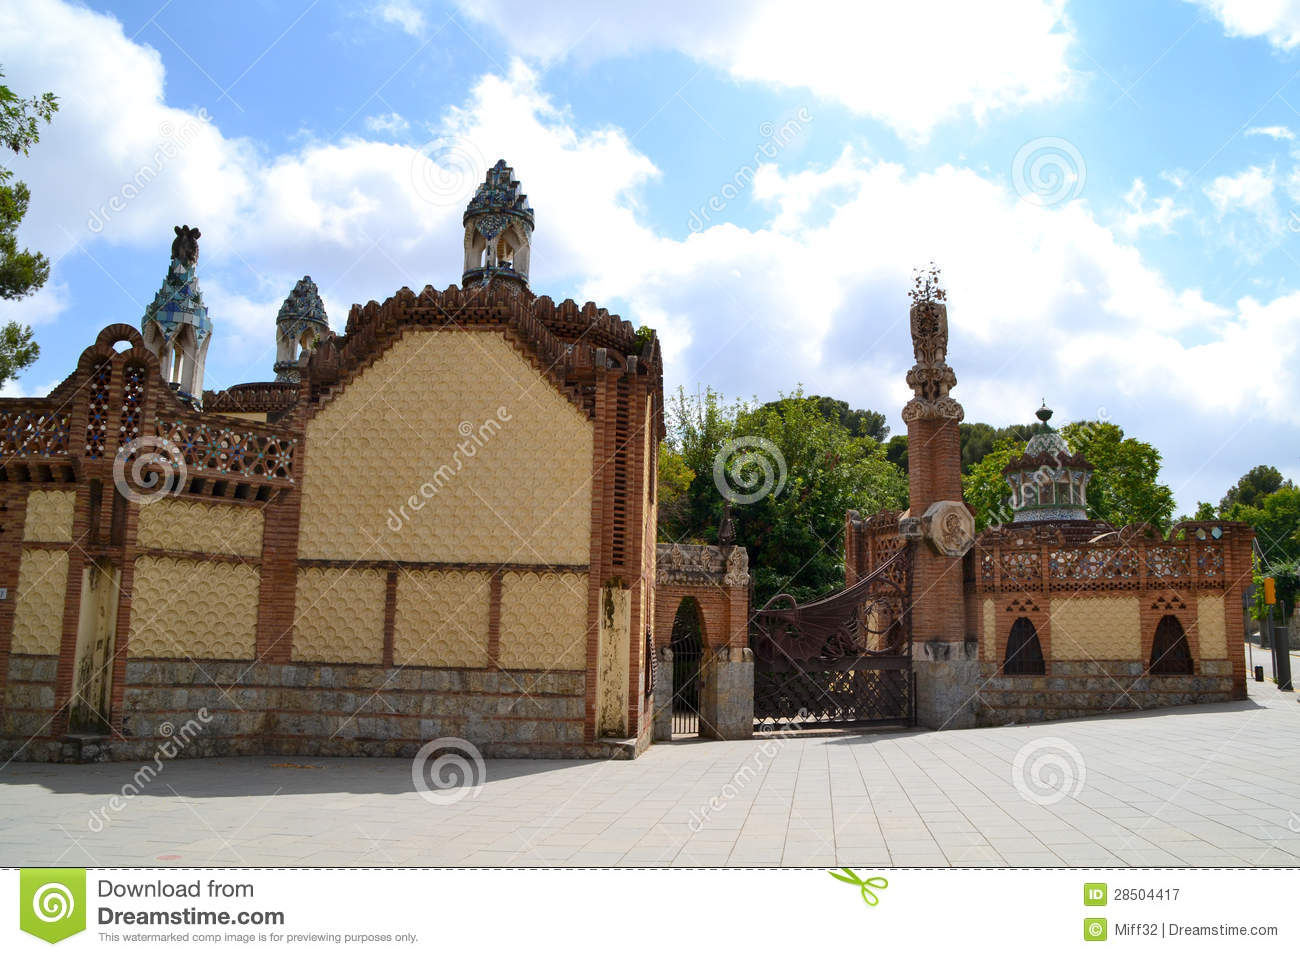 pavilions entrance to finca guell barcelona spain stock image image of guell spain 28504417. Black Bedroom Furniture Sets. Home Design Ideas